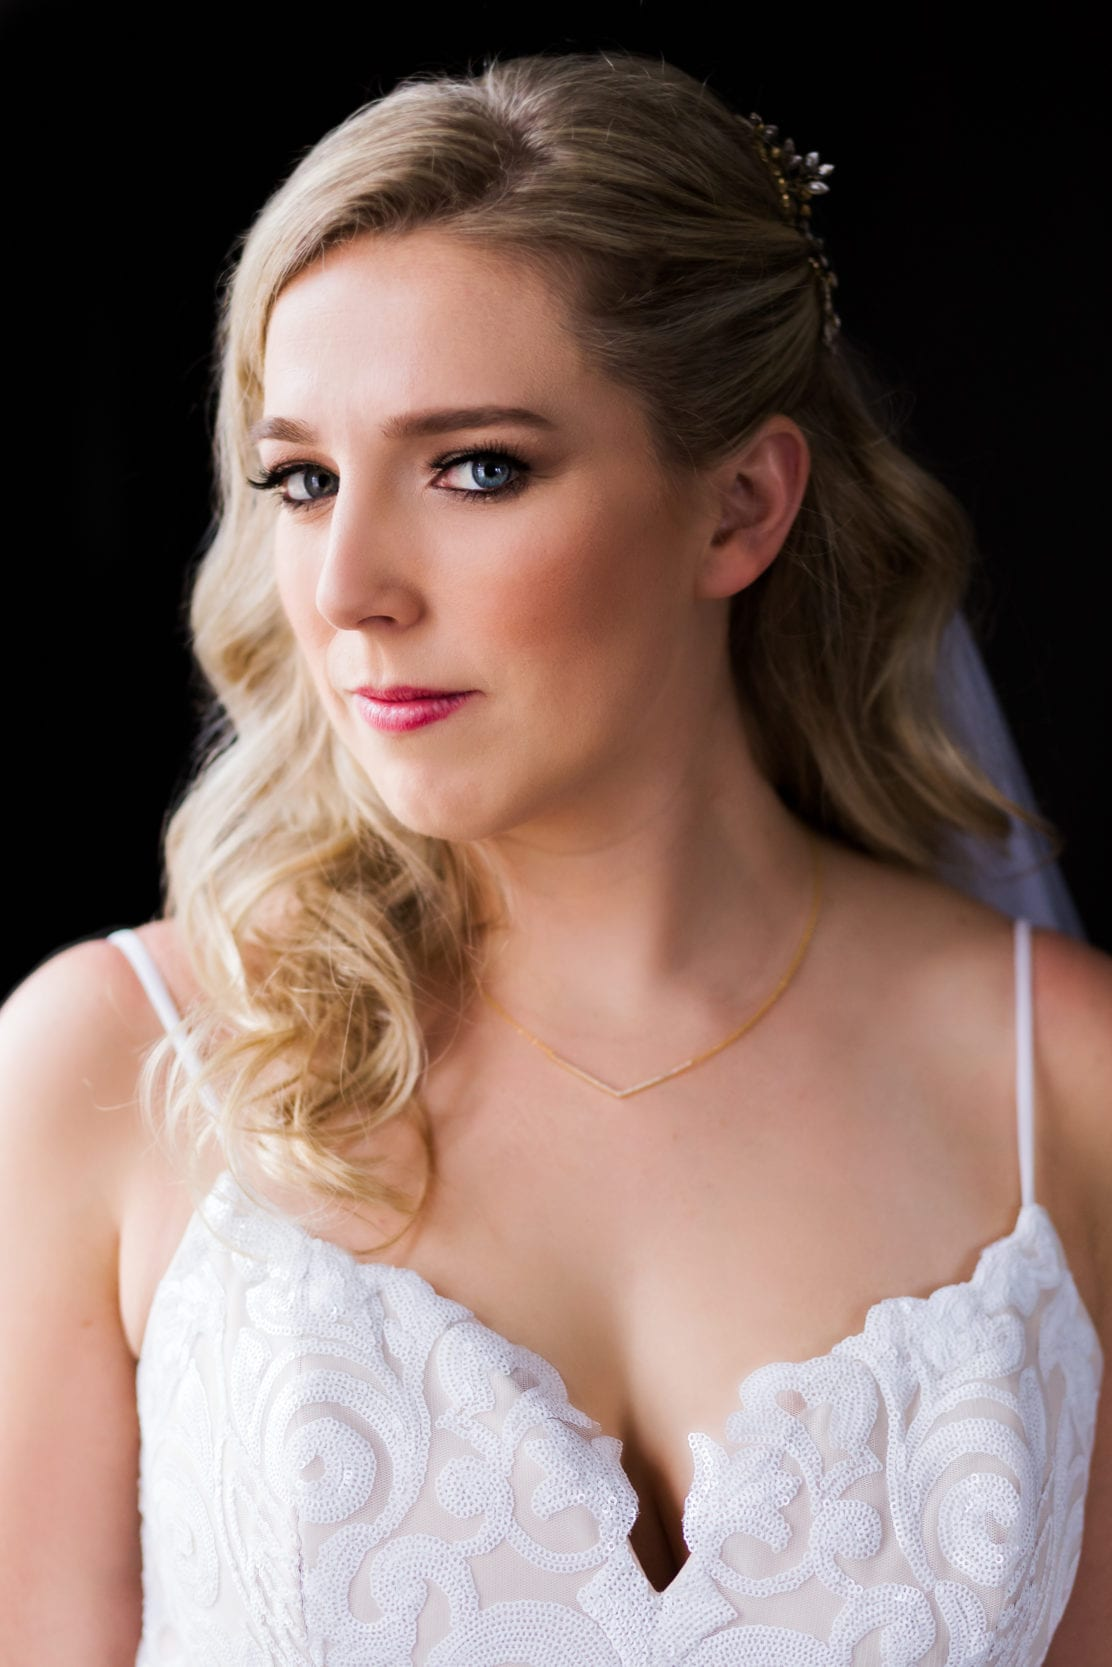 portland_wedding_photographers_bride_portrait_002